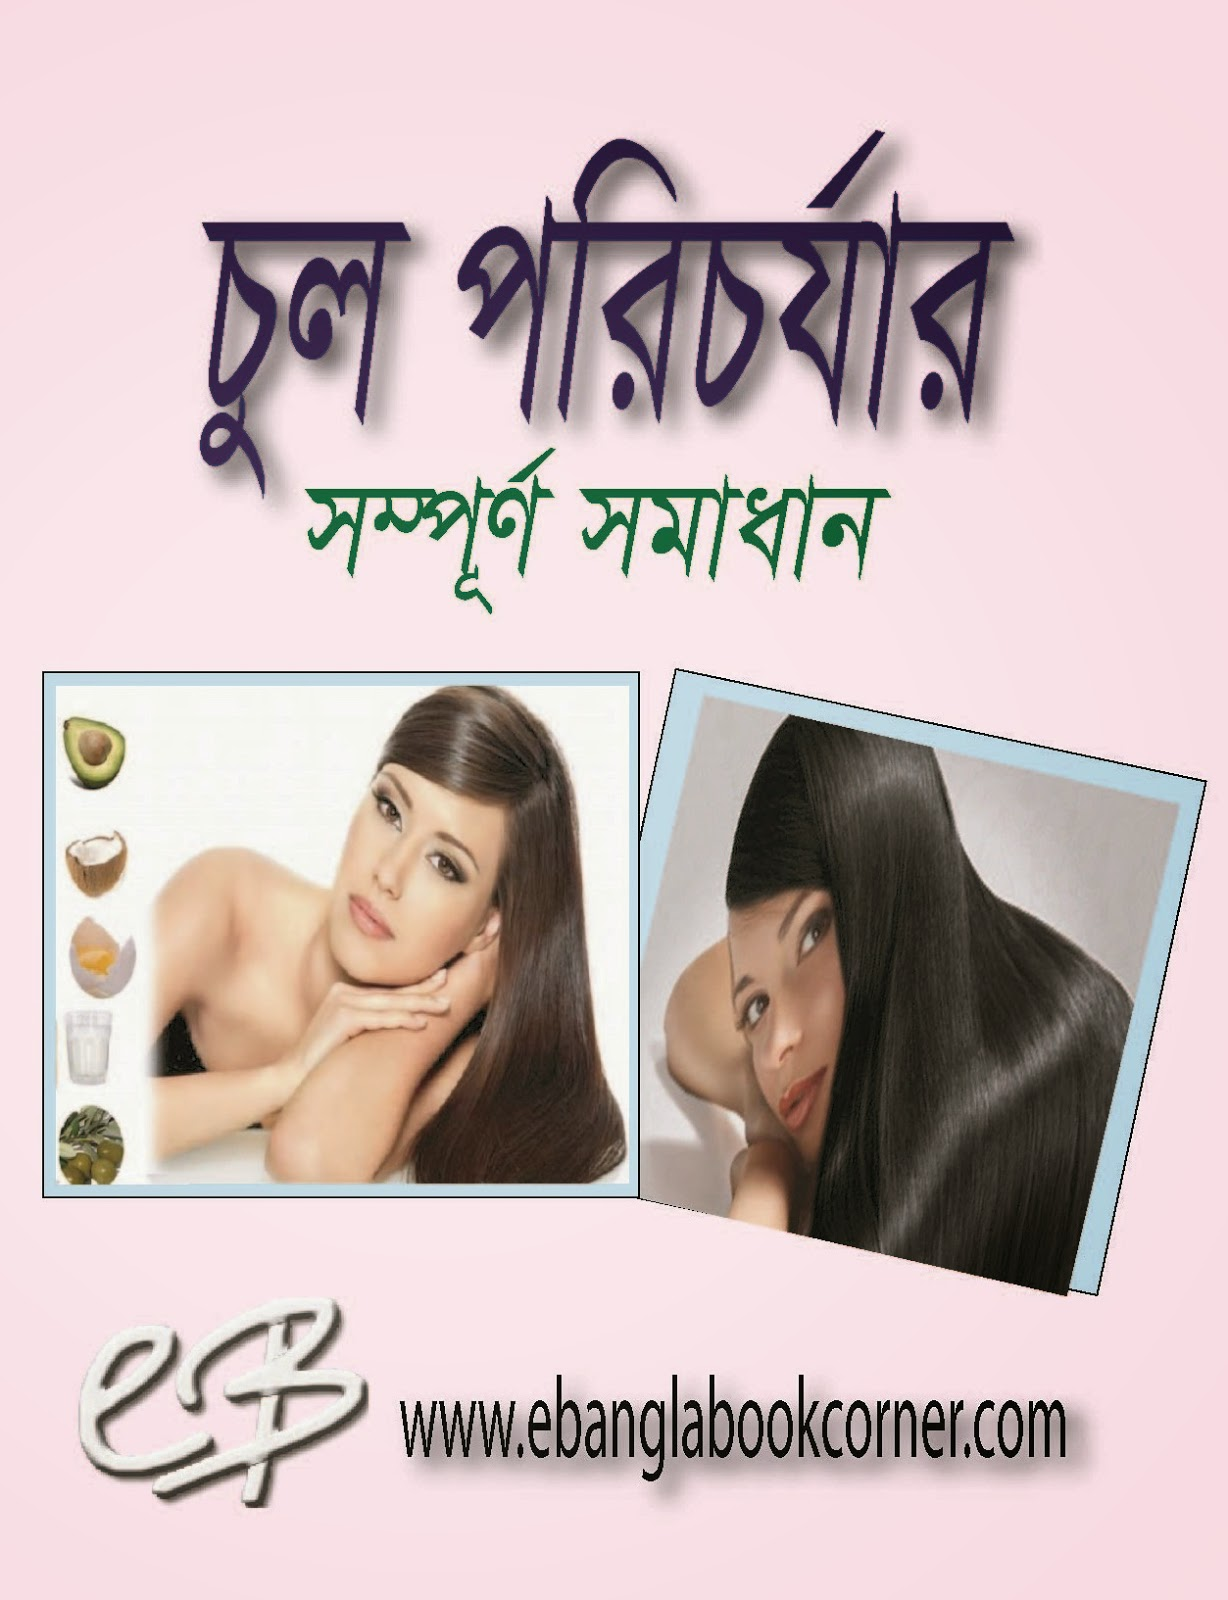 Chobighore ondhokar by sunil gangopadhyay free download bangla.